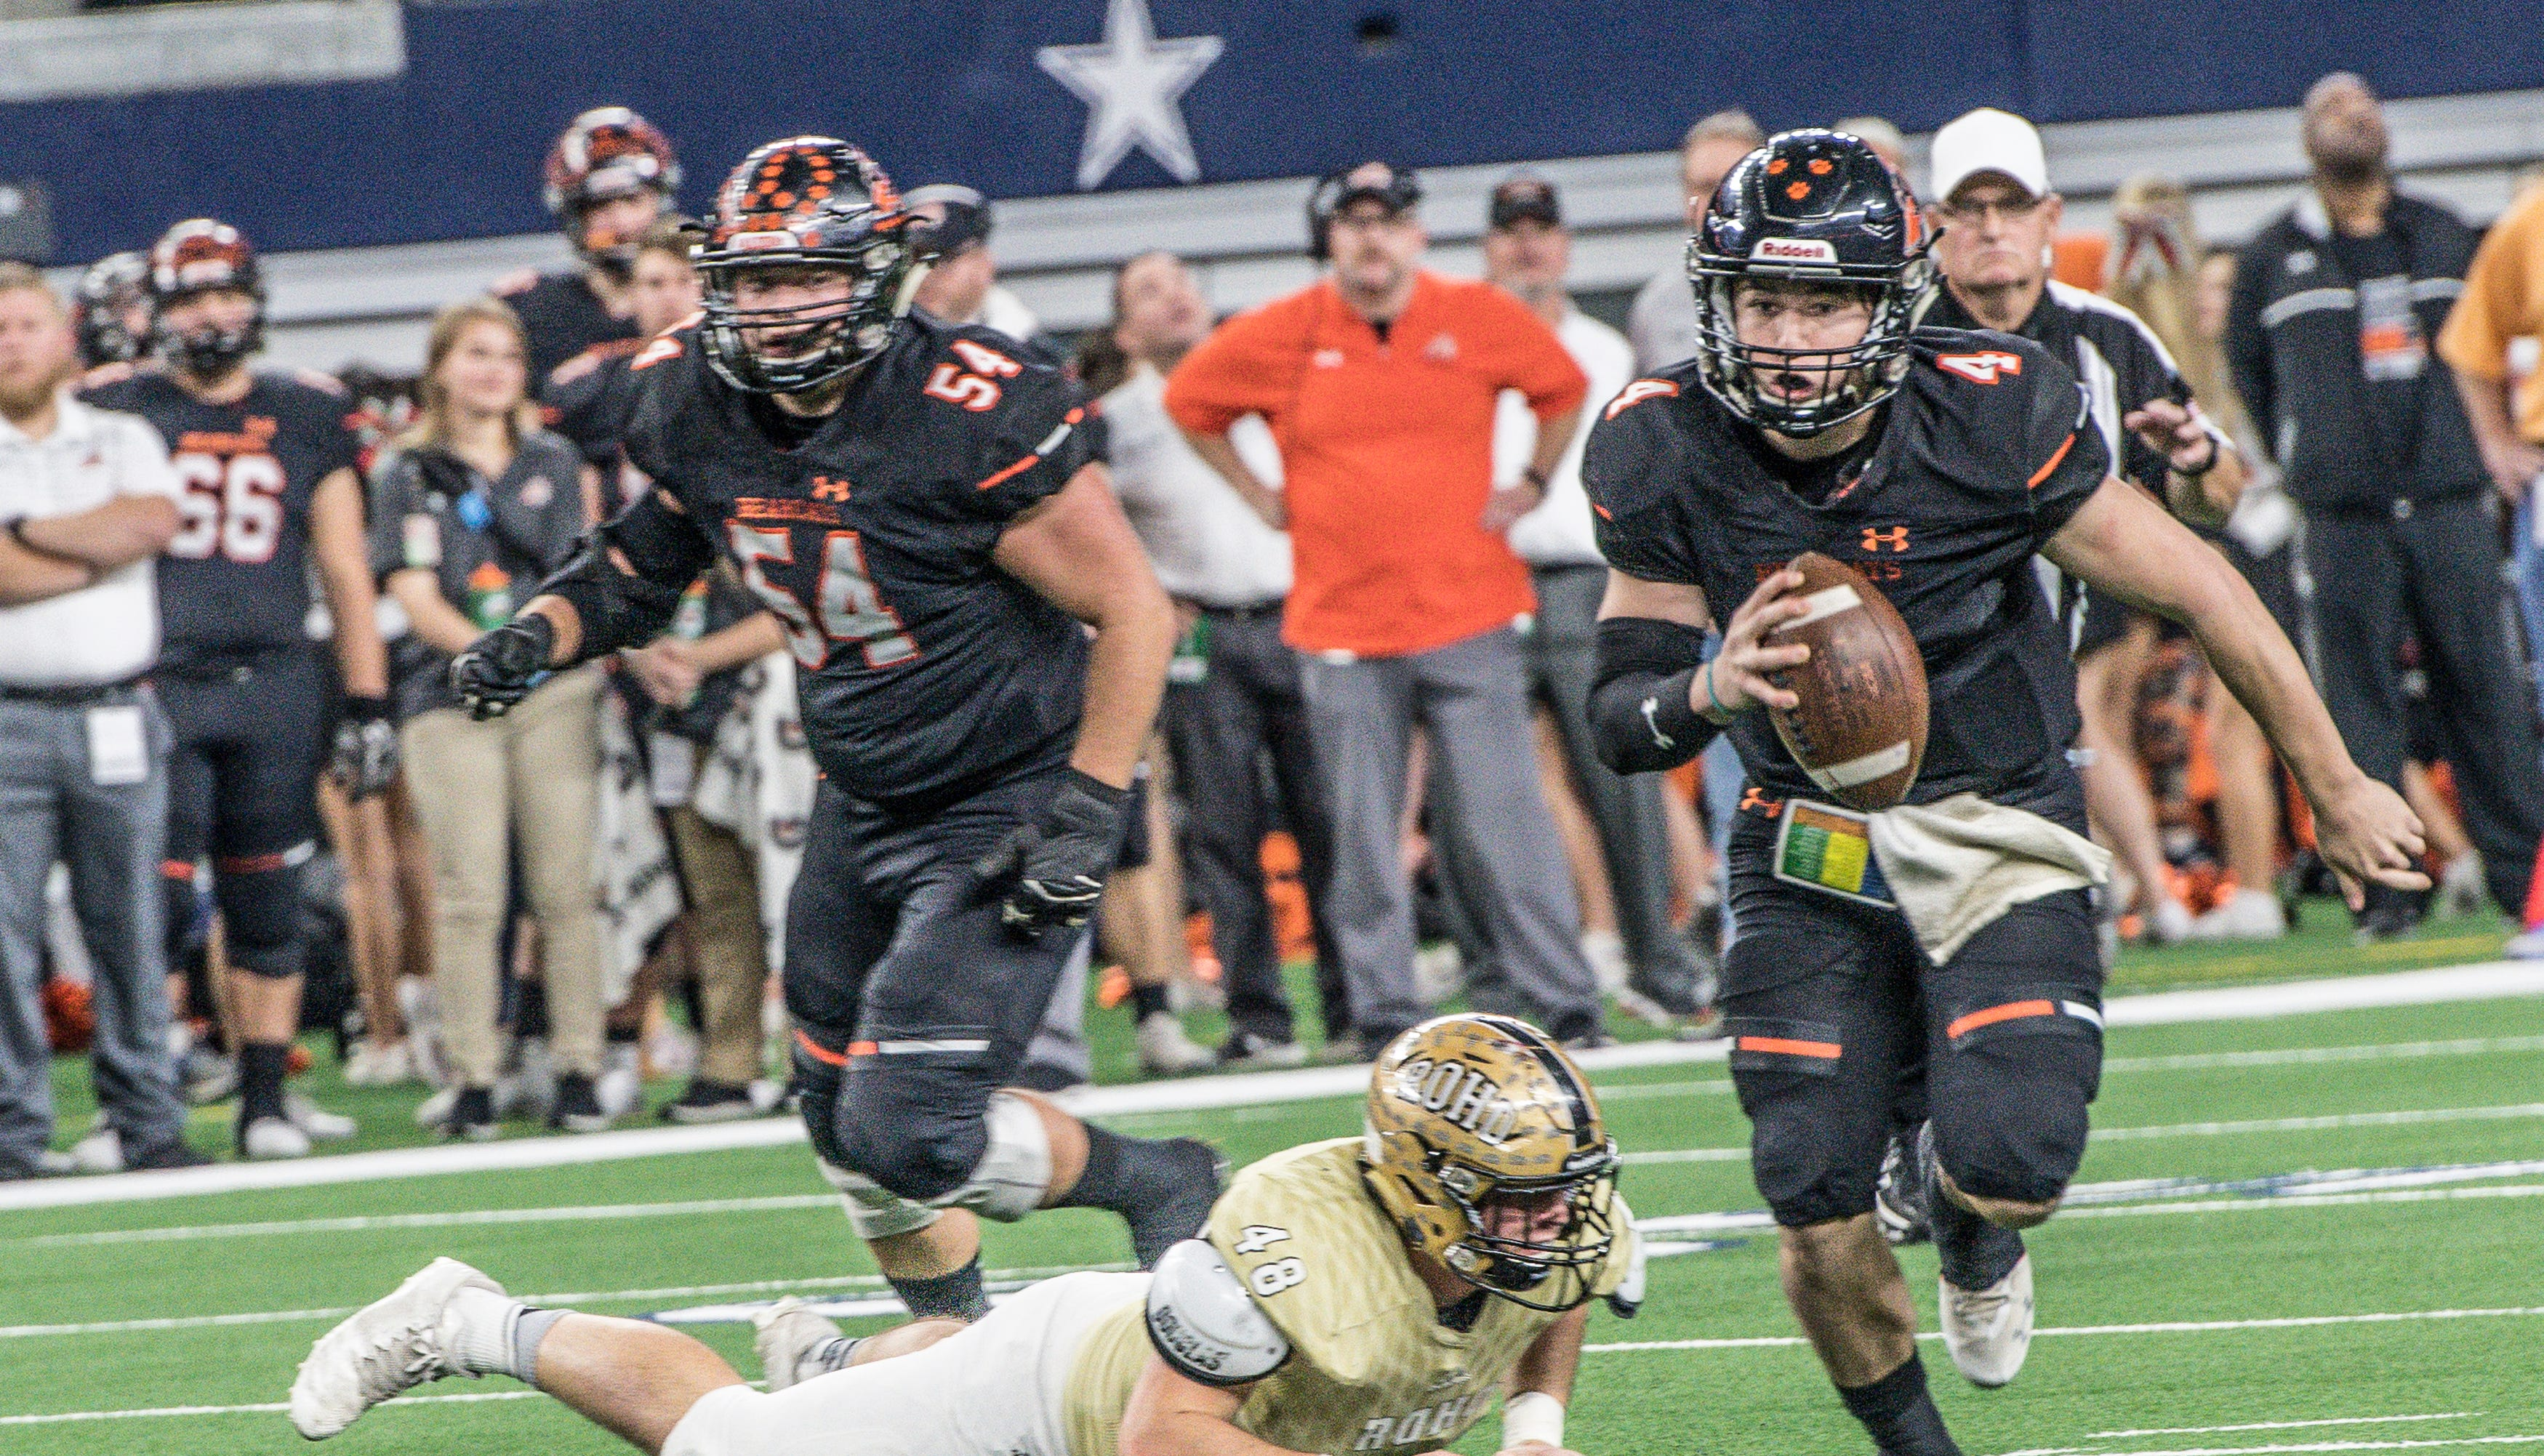 2018 Uil Texas Statewide High School Football Playoff Pairings And